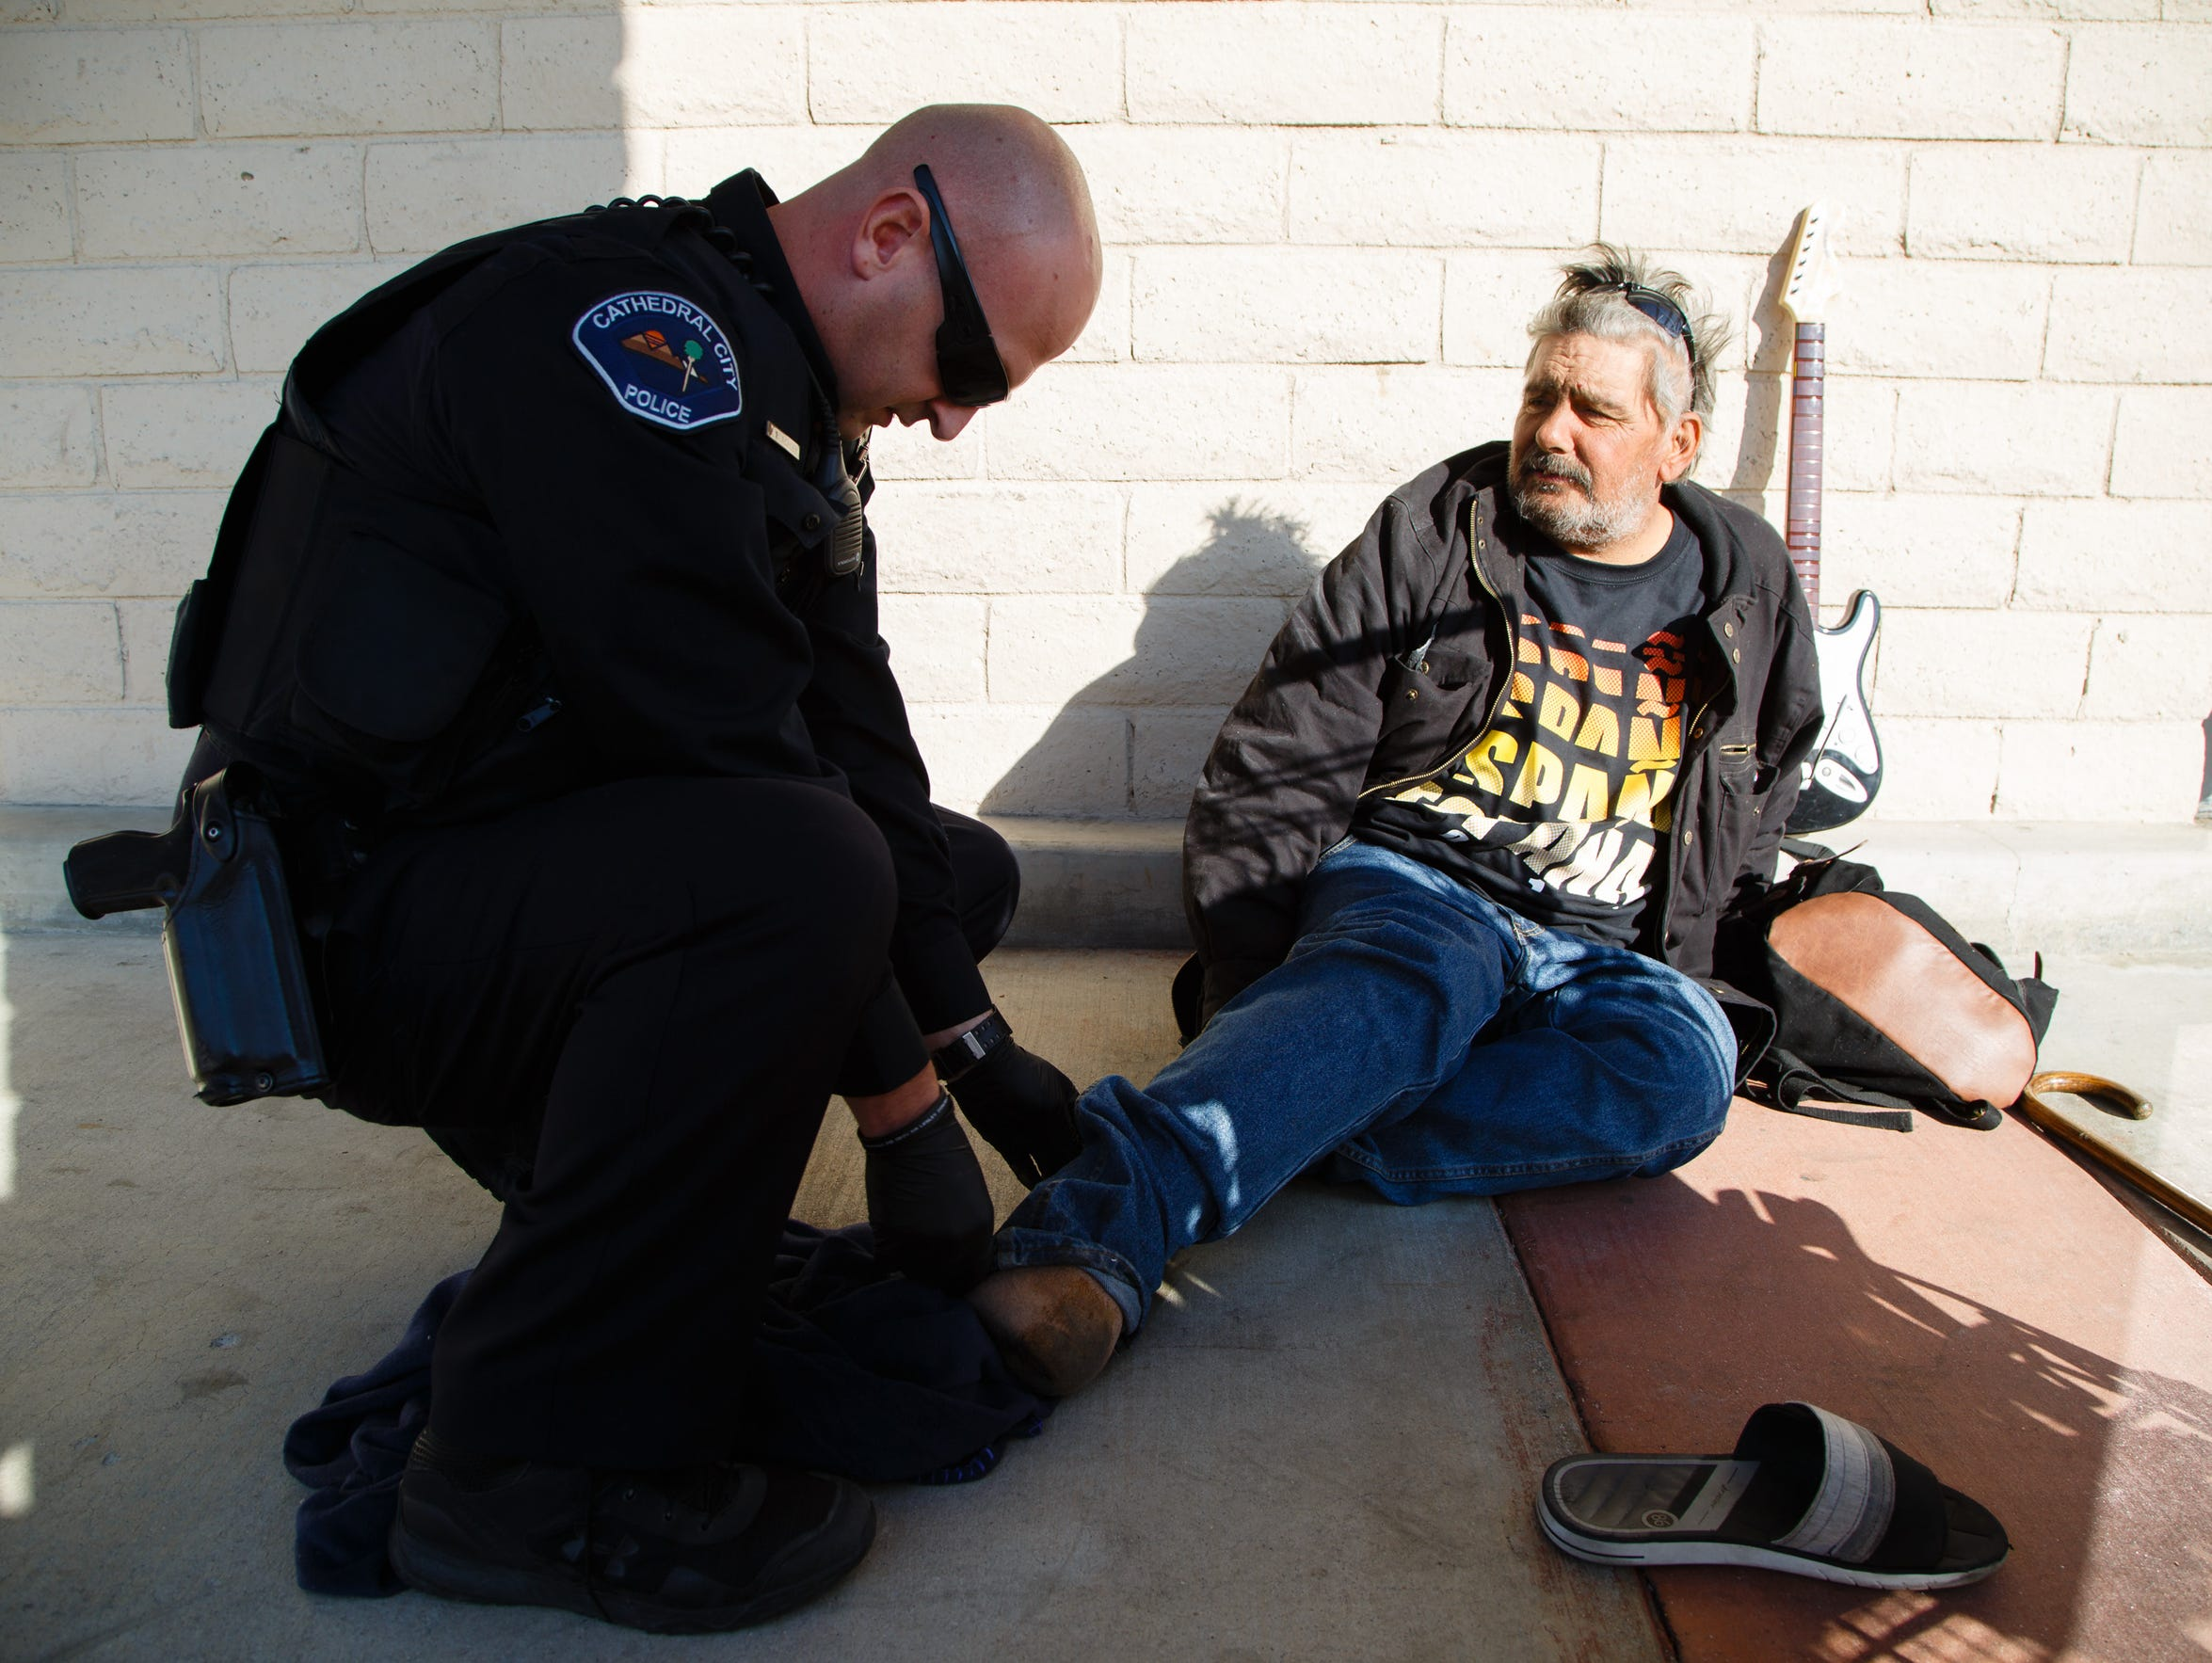 police officer reunites homeless people families officer jeff blatchley encourages george raikoglo to